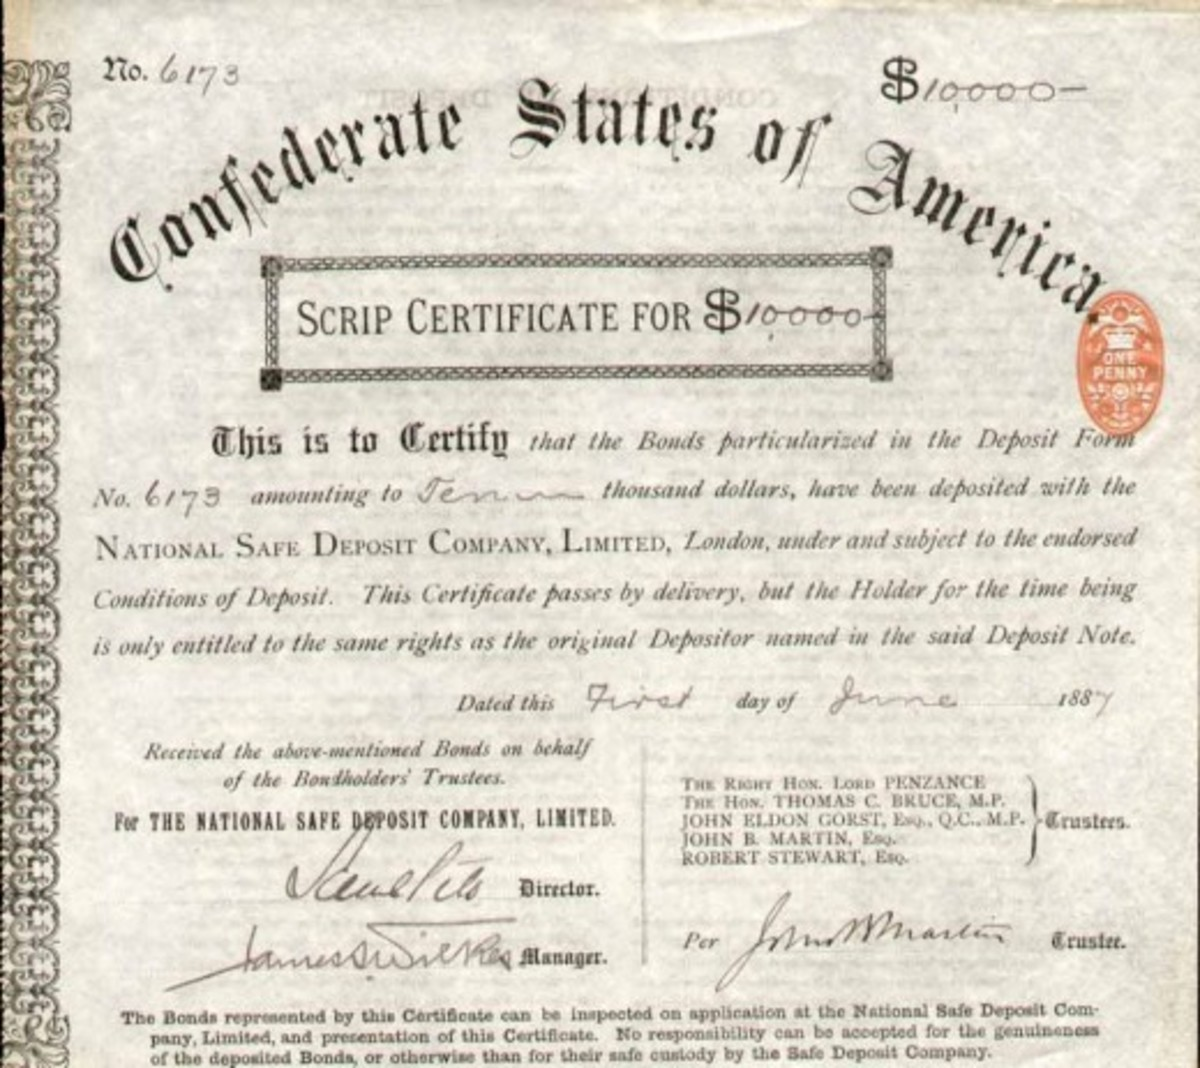 National Safe Deposit Company Ltd. for holding of confederate bonds, London, 1887; measures ca. 22 x 21 cm., one penny Source: 1887 and The British Stamp Tax was in Full Effect